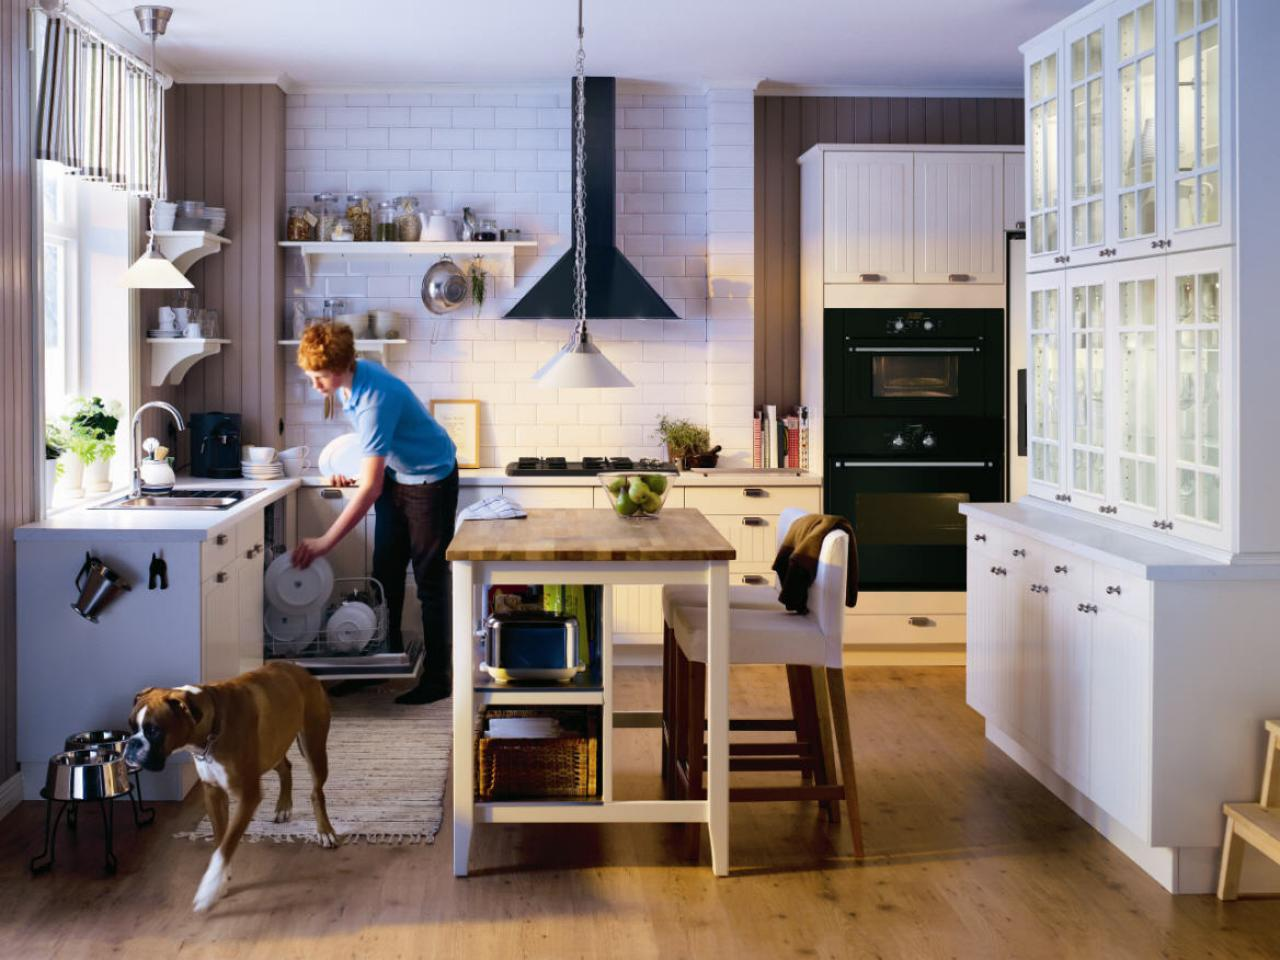 ikea country kitchen 5 ways to personalize your kitchen remodel no matter the 1770